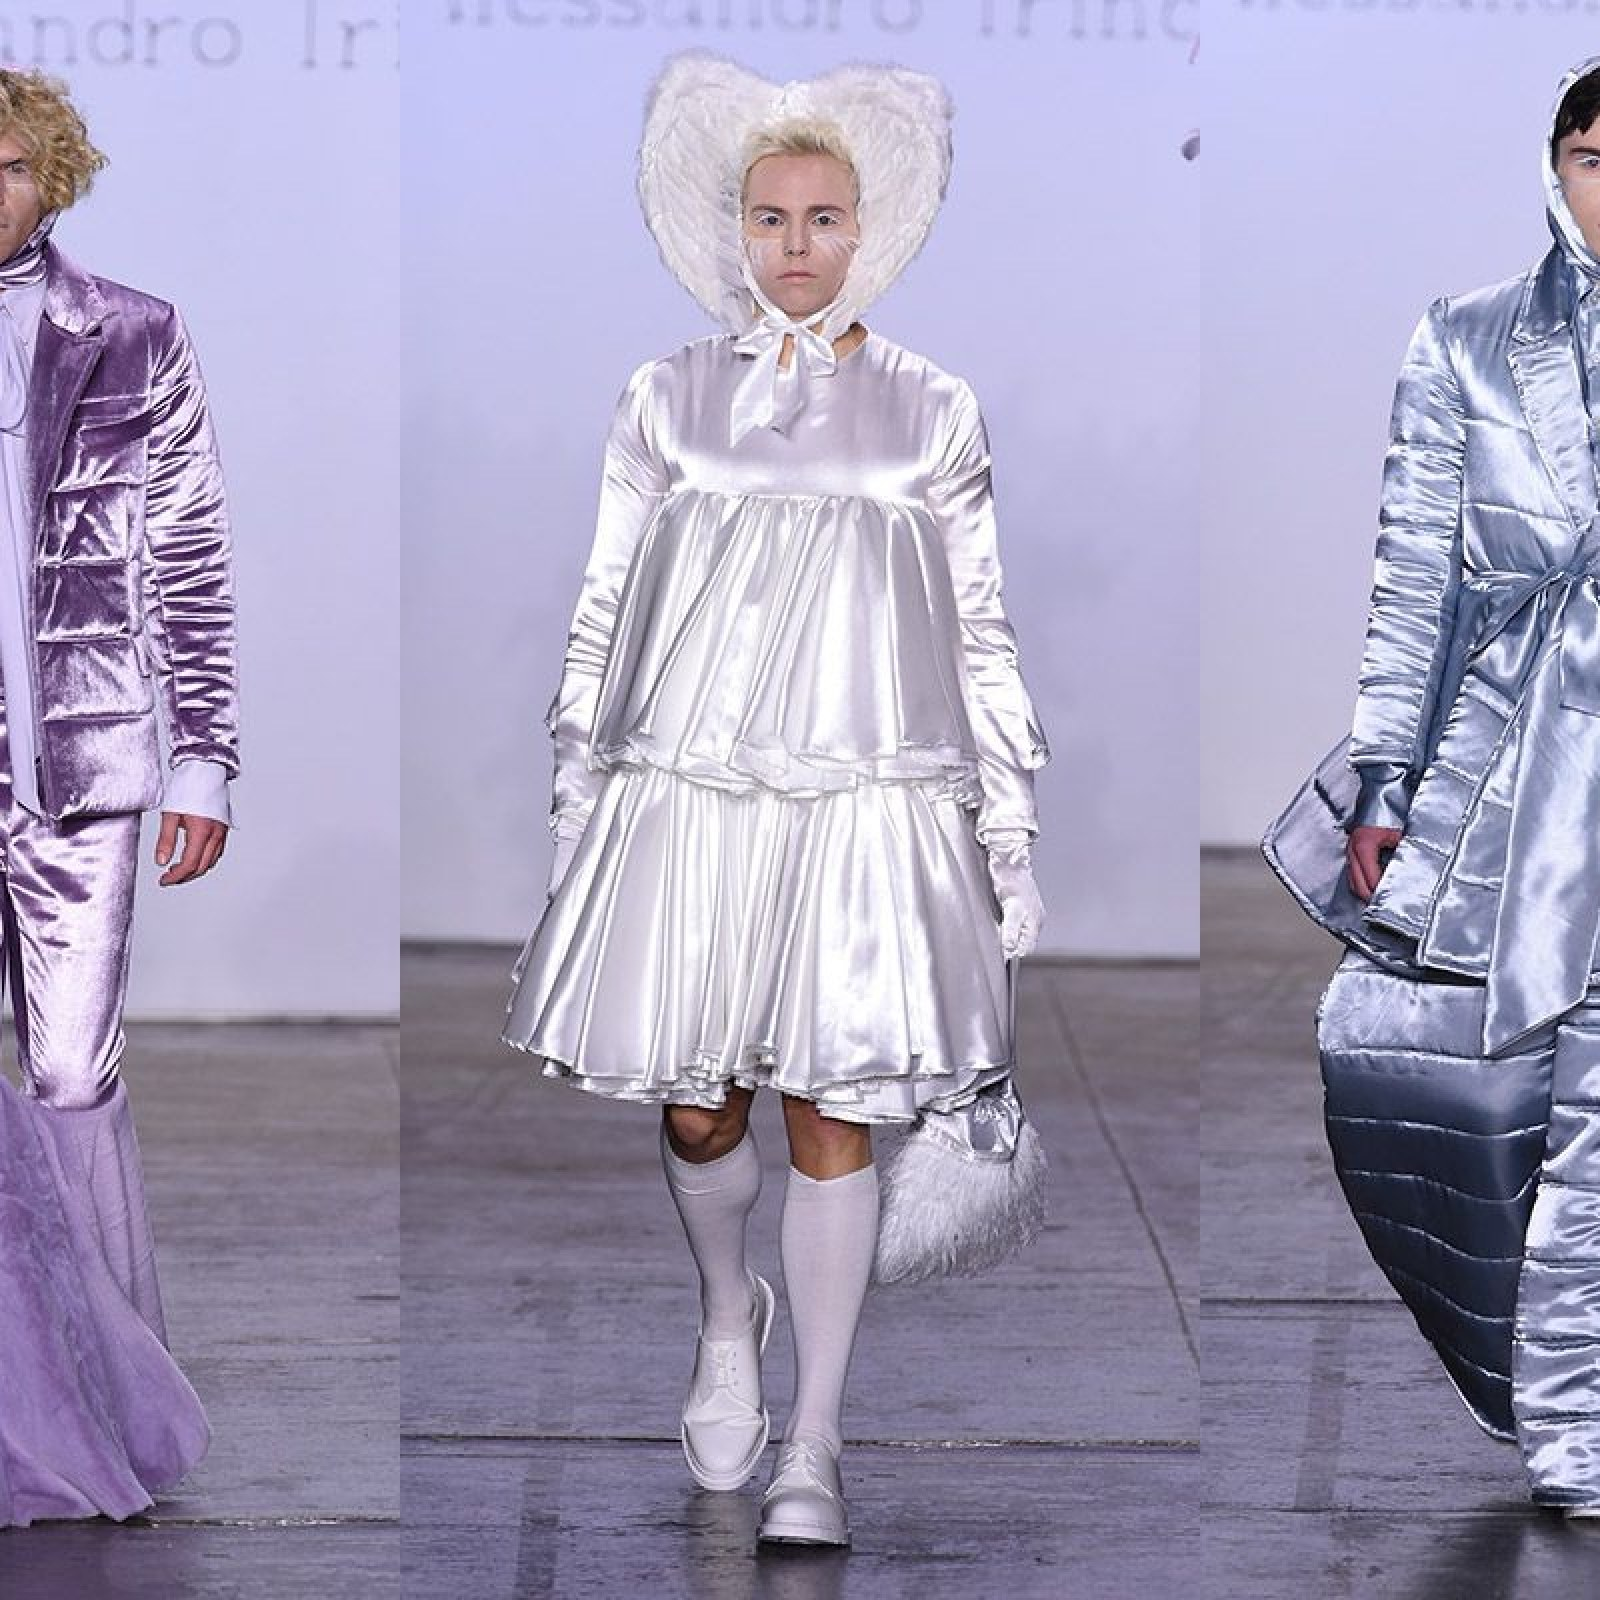 faa12559 New York Fashion Week 2019: Photos of the Shows at NYFW